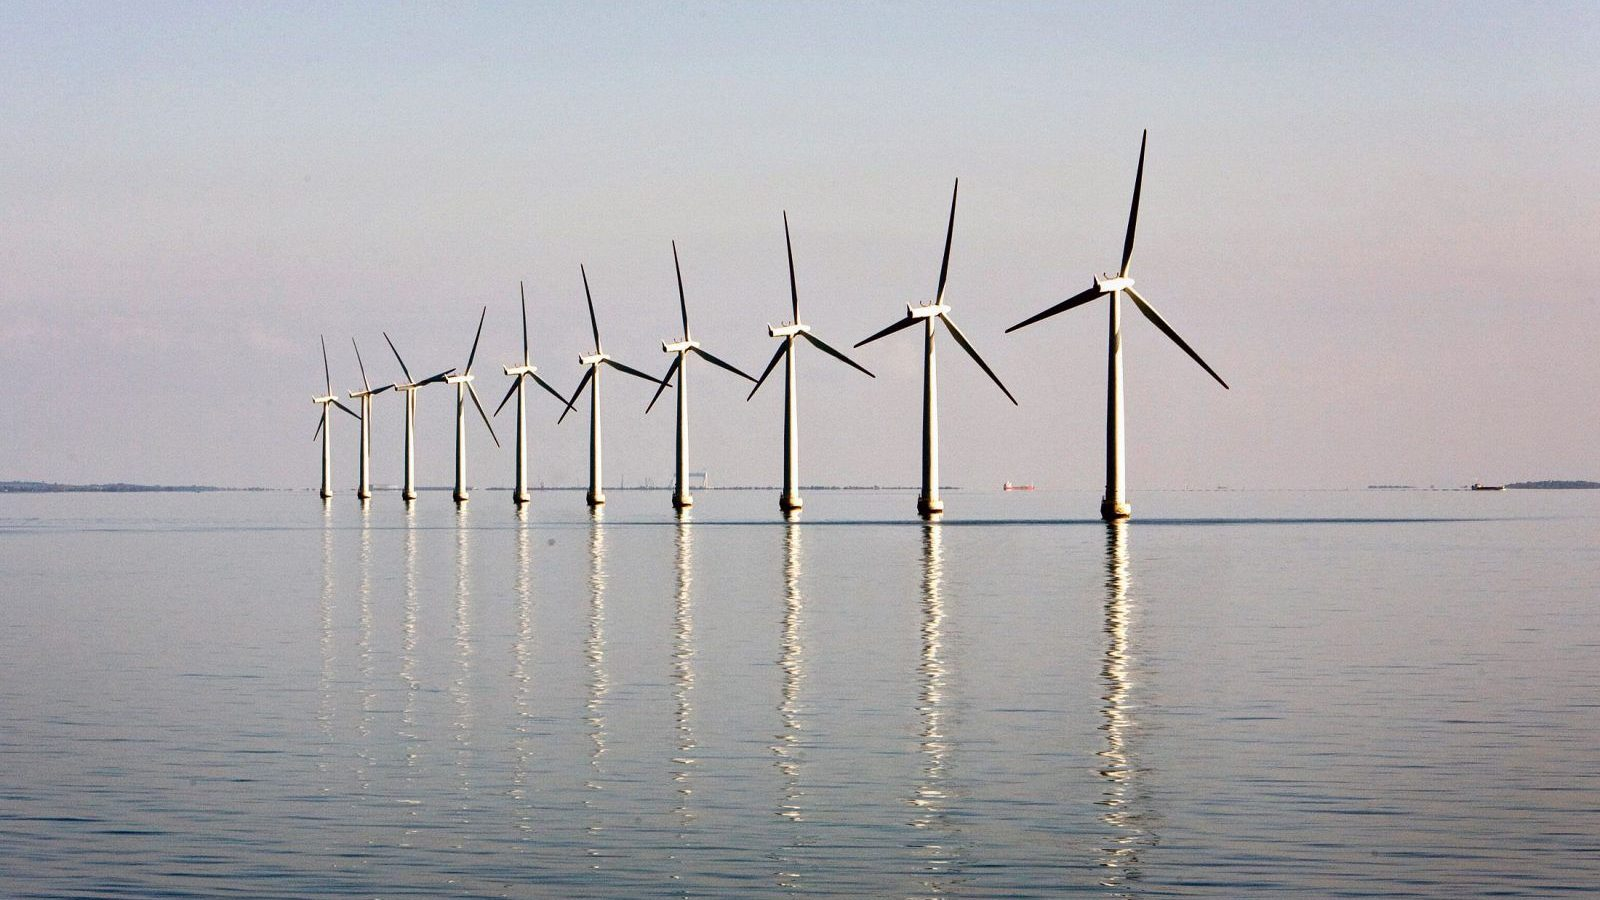 Three US states signed up for 1,200 MW of offshore wind power this